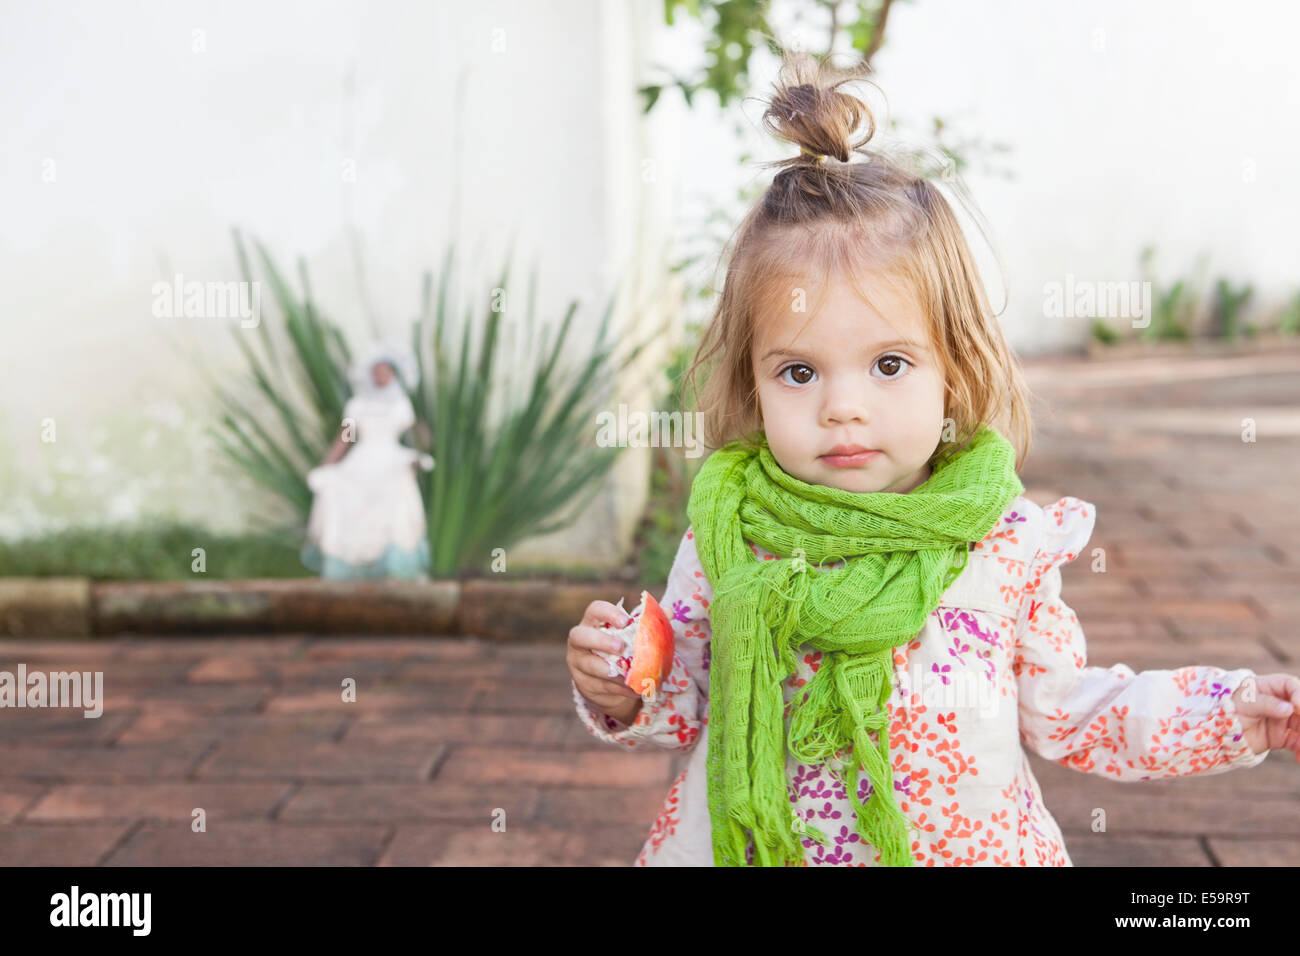 Baby girl eating fruit outdoors - Stock Image